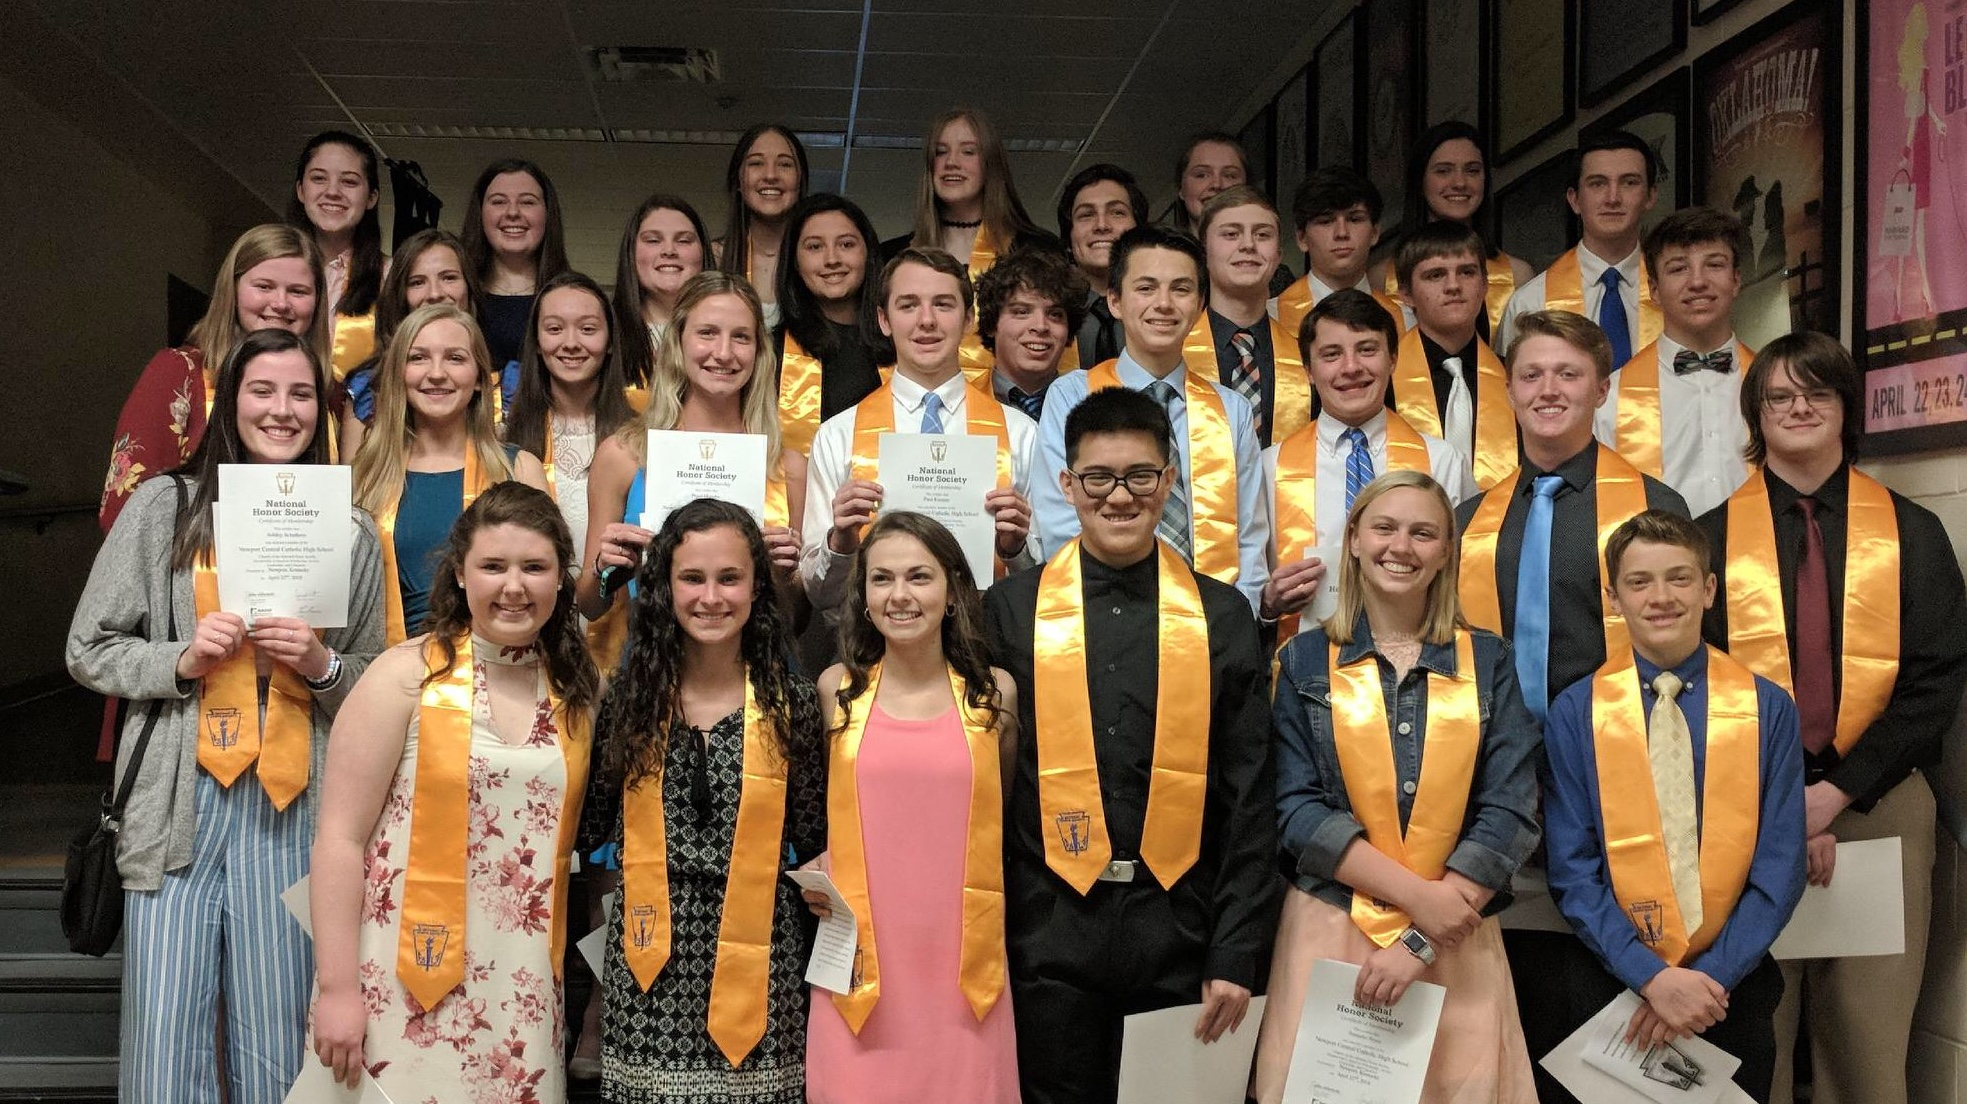 Membership is based on the four pillars of the National Honor Society: Character, Service, Leadership, and Scholarship. The faculty advisory committee reviewed applications and chose to induct these students because of their high level of achievement in each of the four categories. Congratulations to all new members and officers.